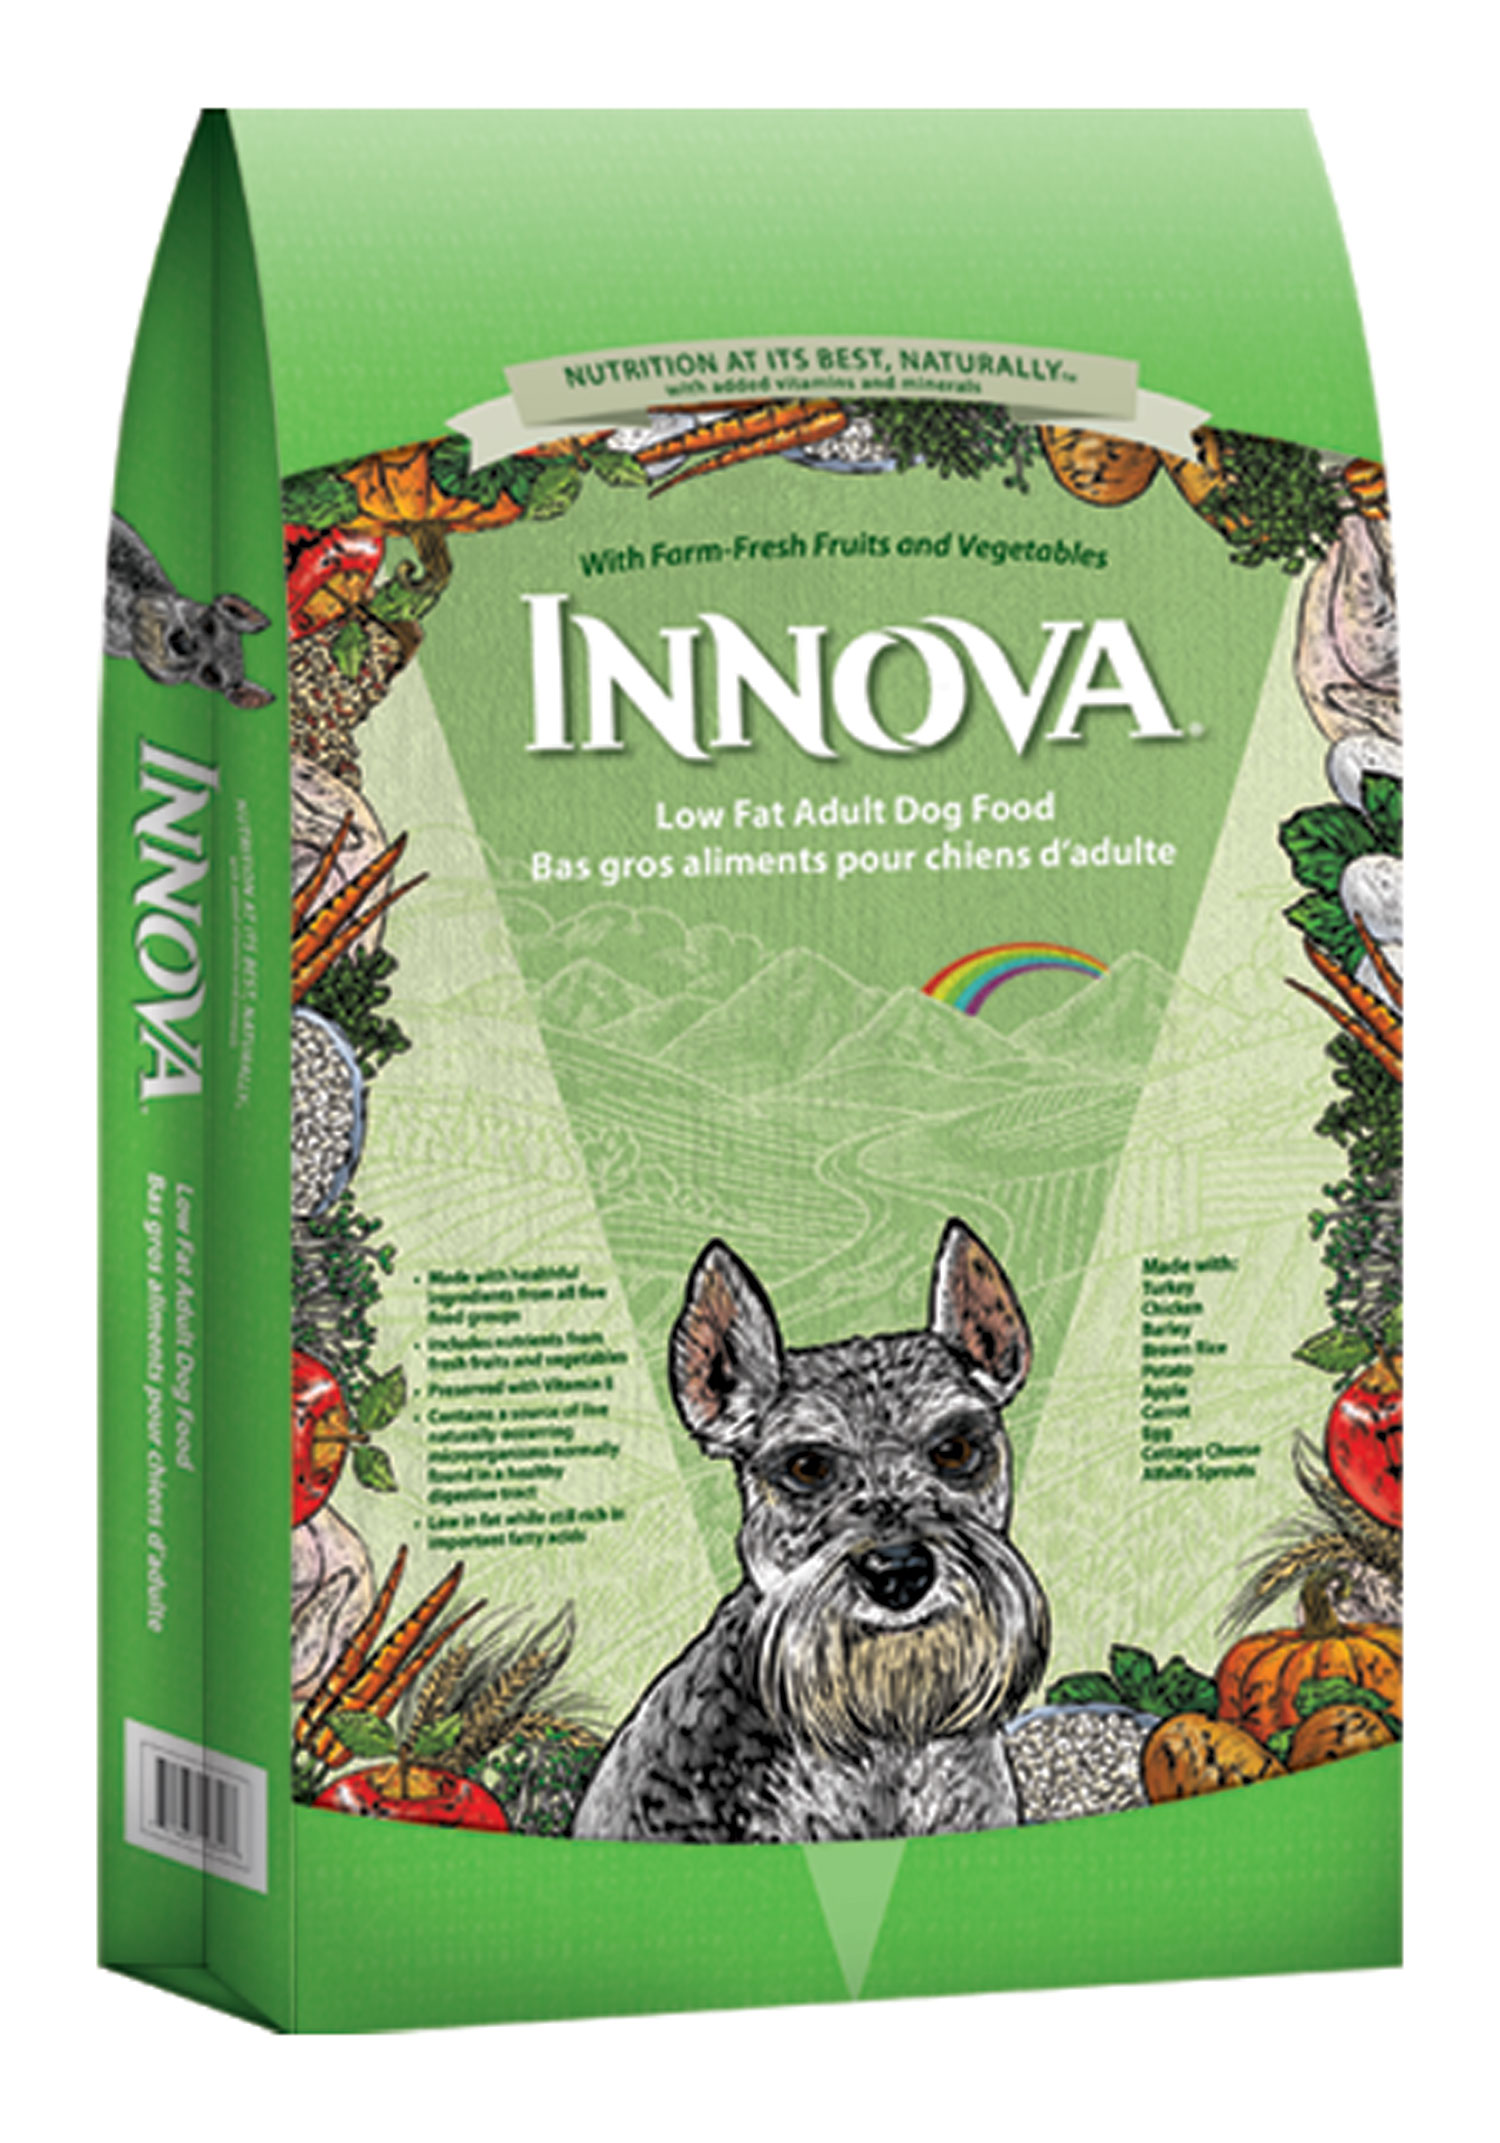 Innova Dog Food Review